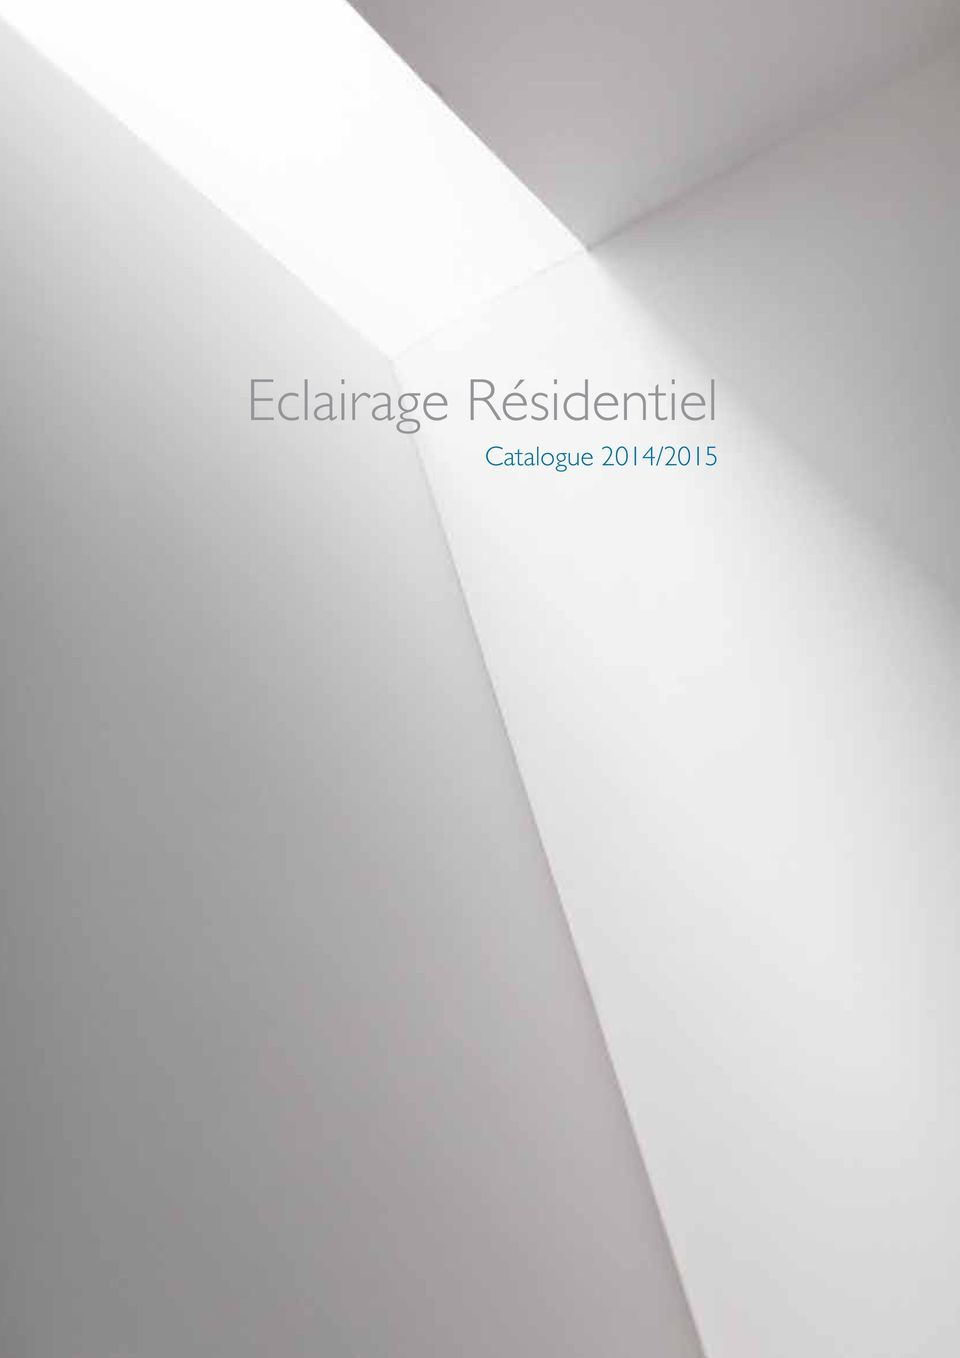 Catalogue Philips Eclairage Exterieur Eclairage Résidentiel Catalogue 2014 Pdf